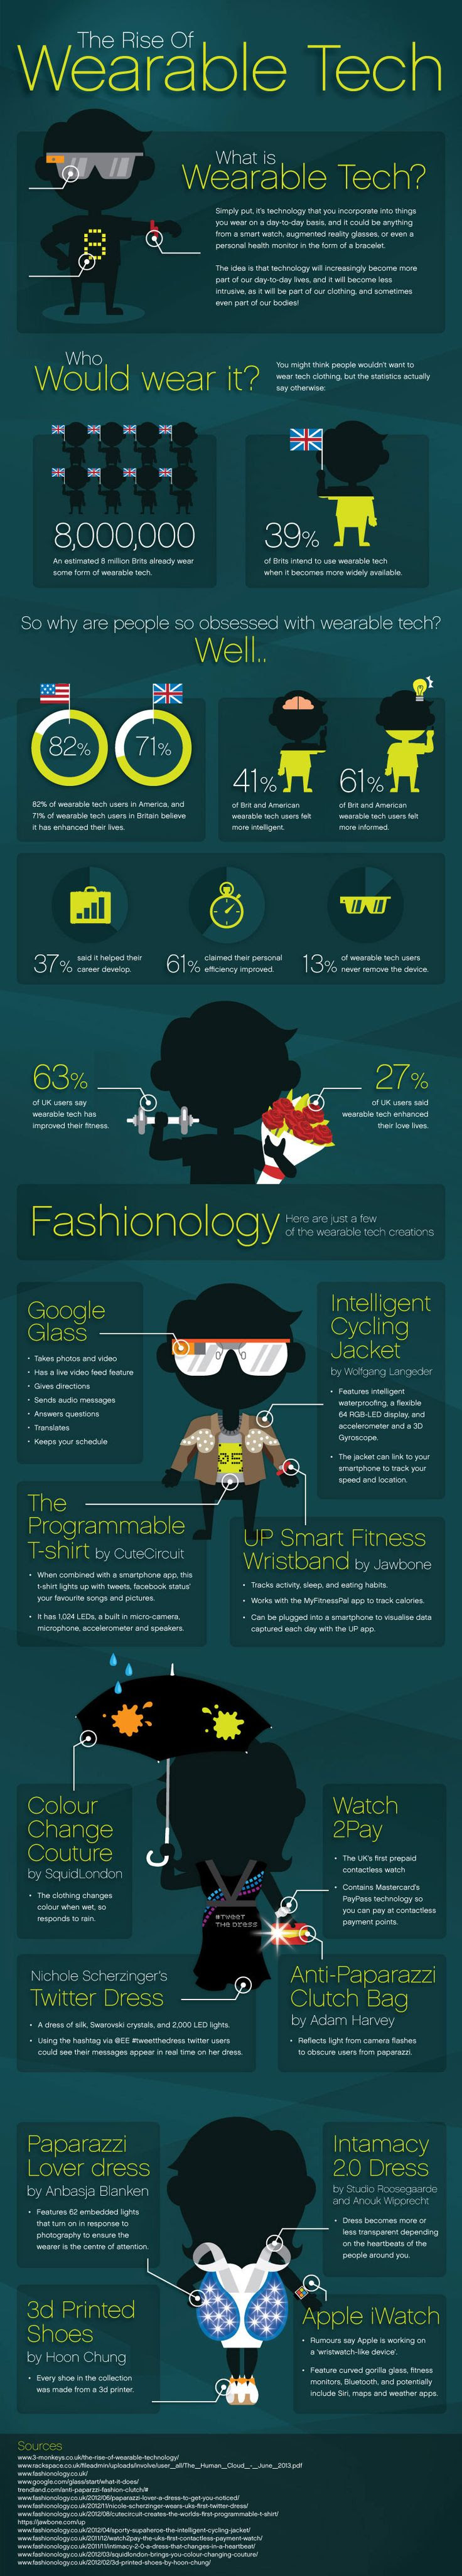 The Rise of Wearable Tech